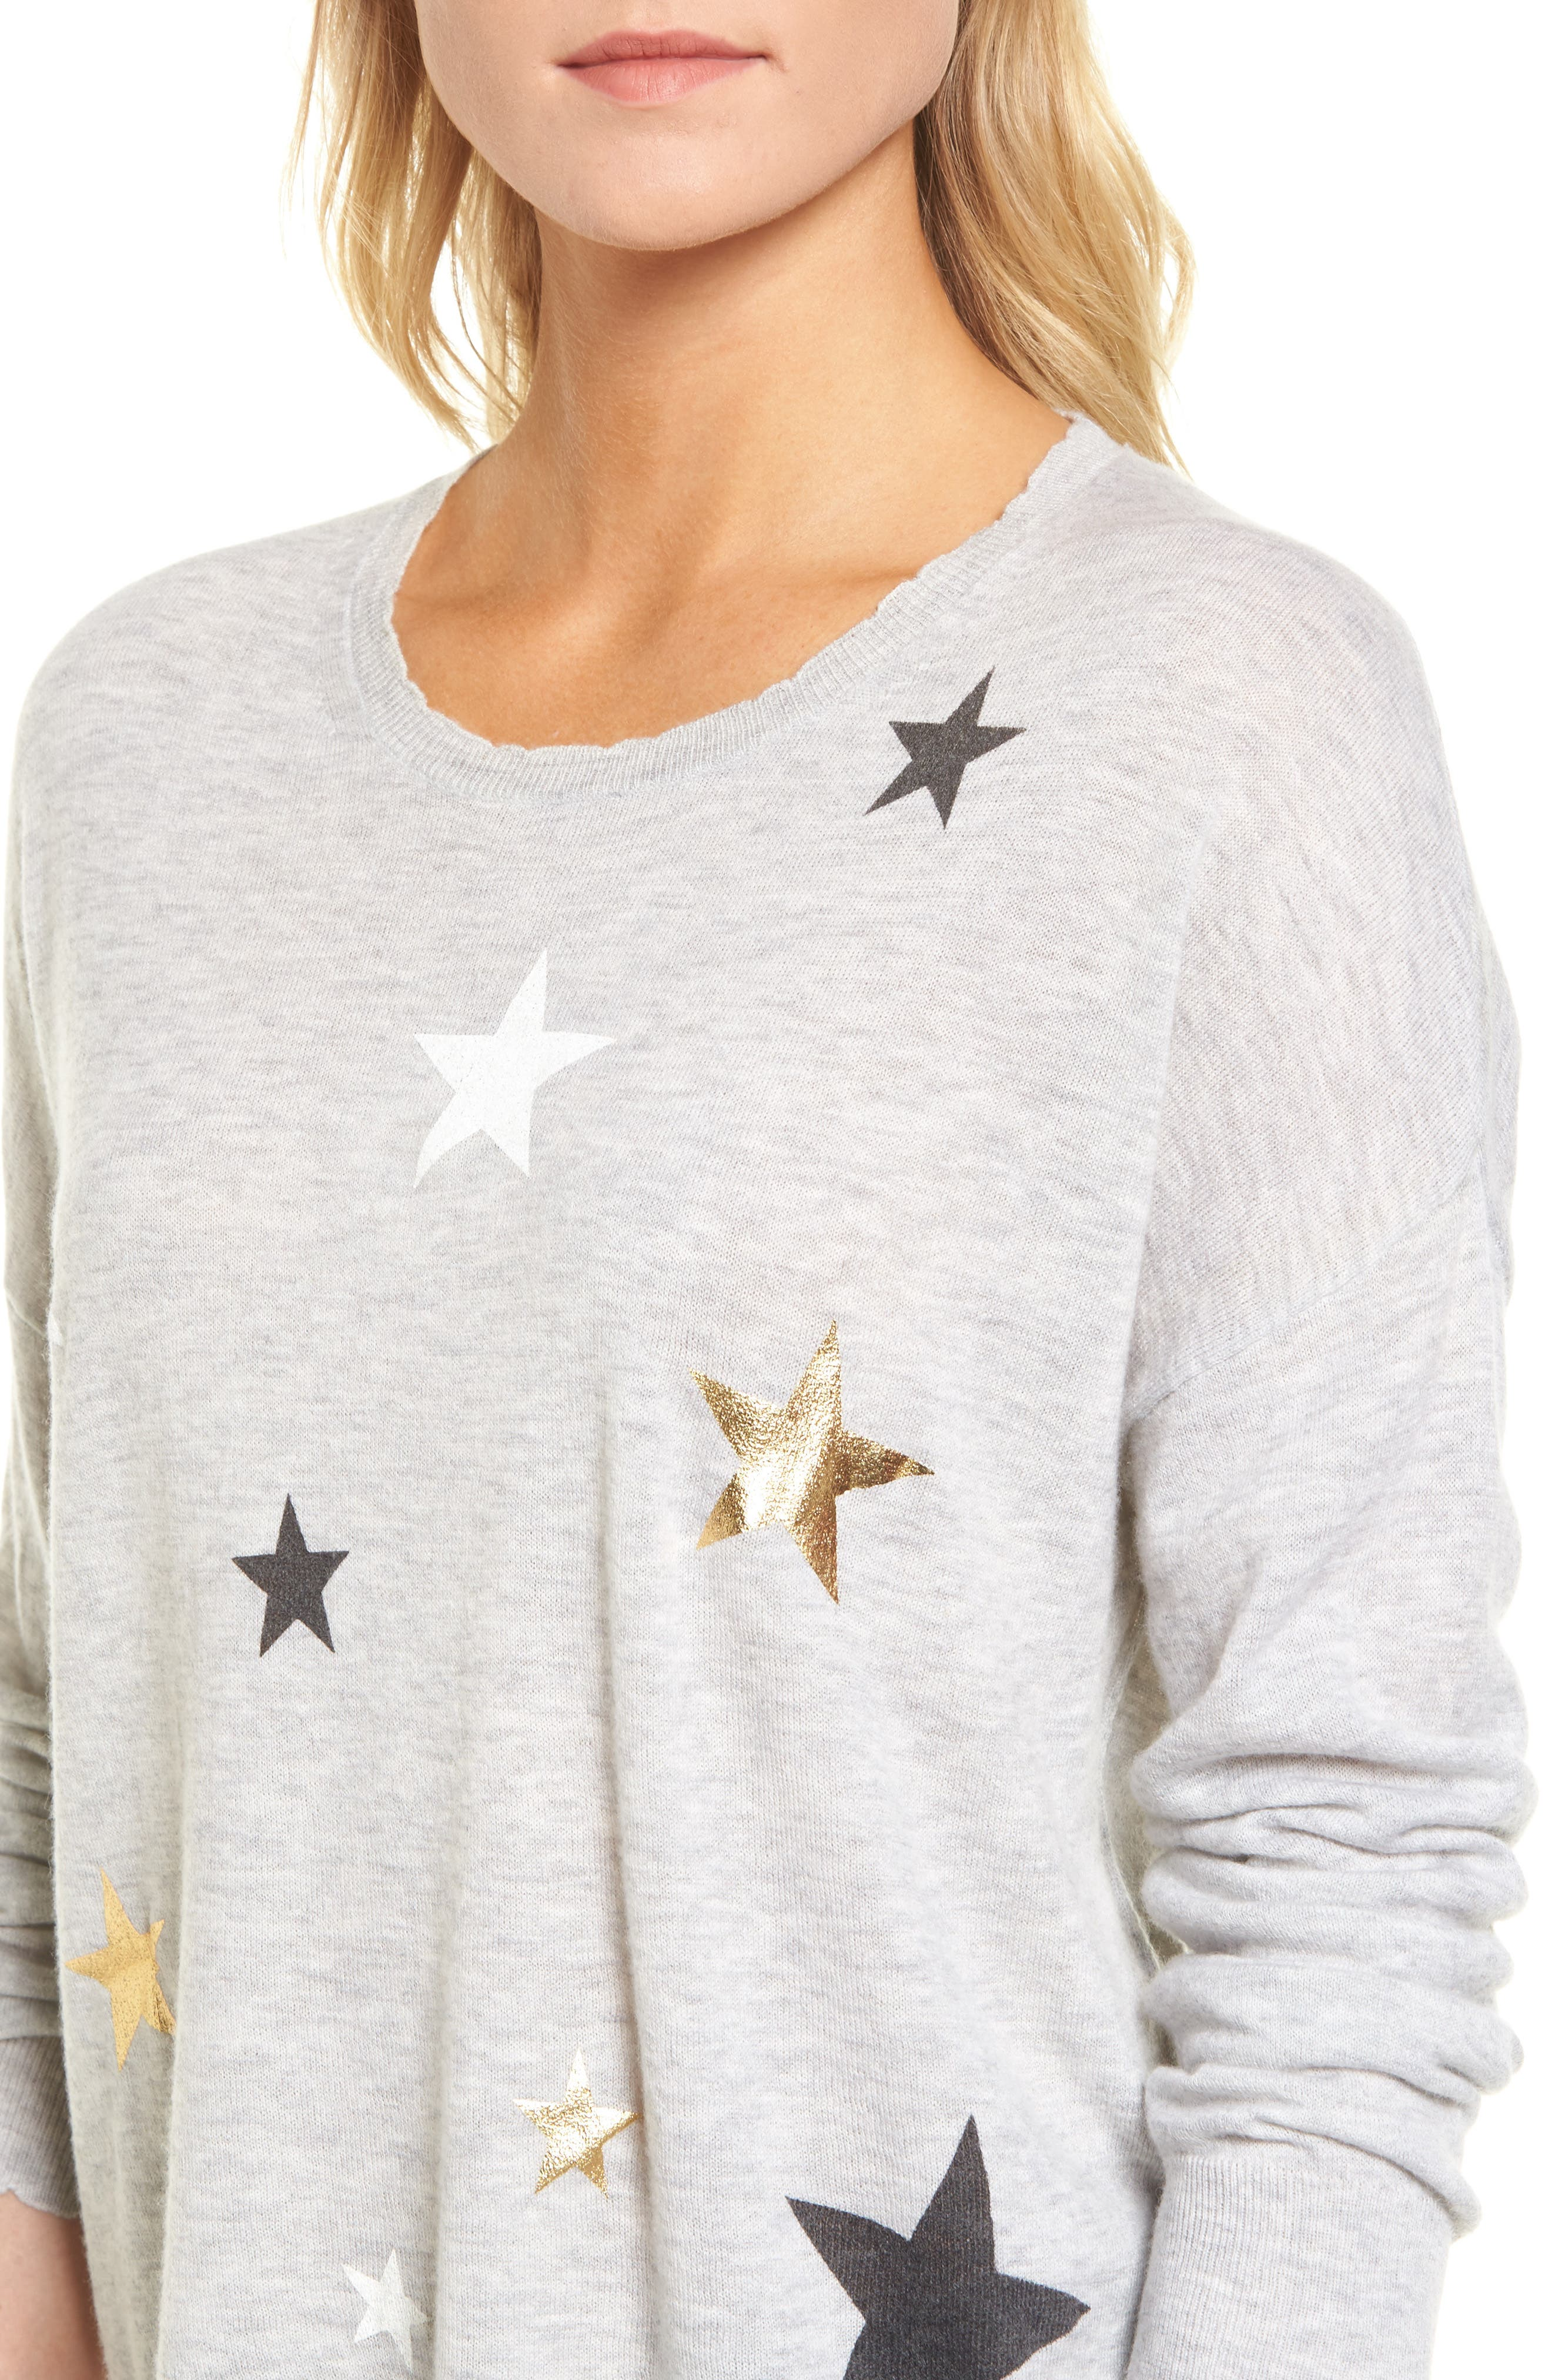 Stars Wool & Cashmere Sweater,                             Alternate thumbnail 4, color,                             Heather Grey